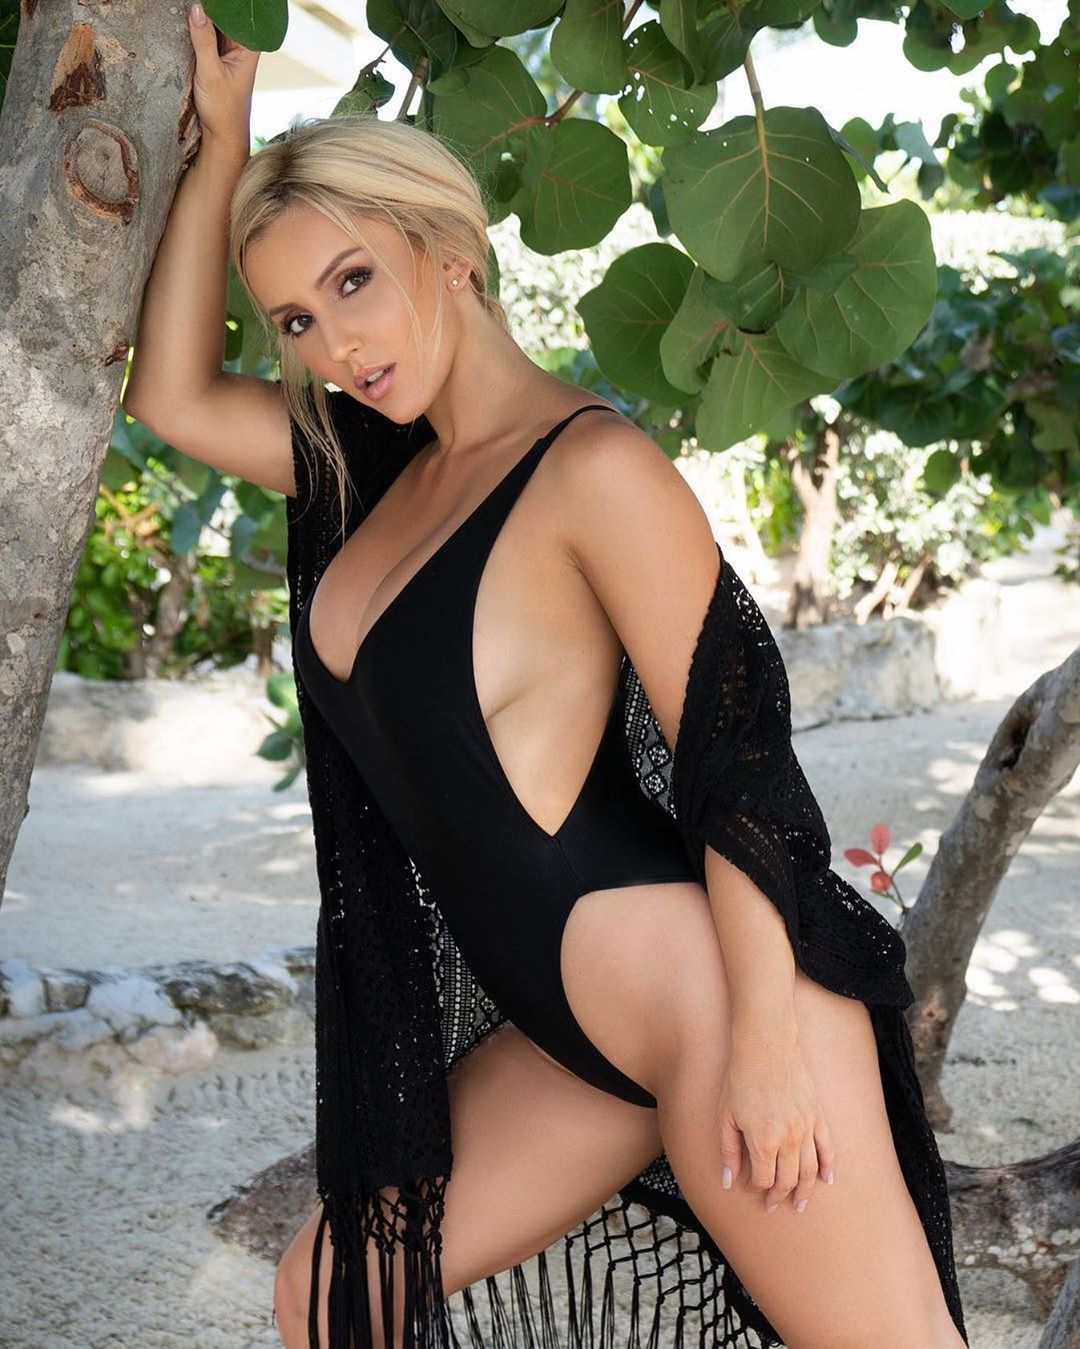 Amanda Paris Super Hot Swimsuit Pics - Amanda Paris Super Hot Swimsuit Pics